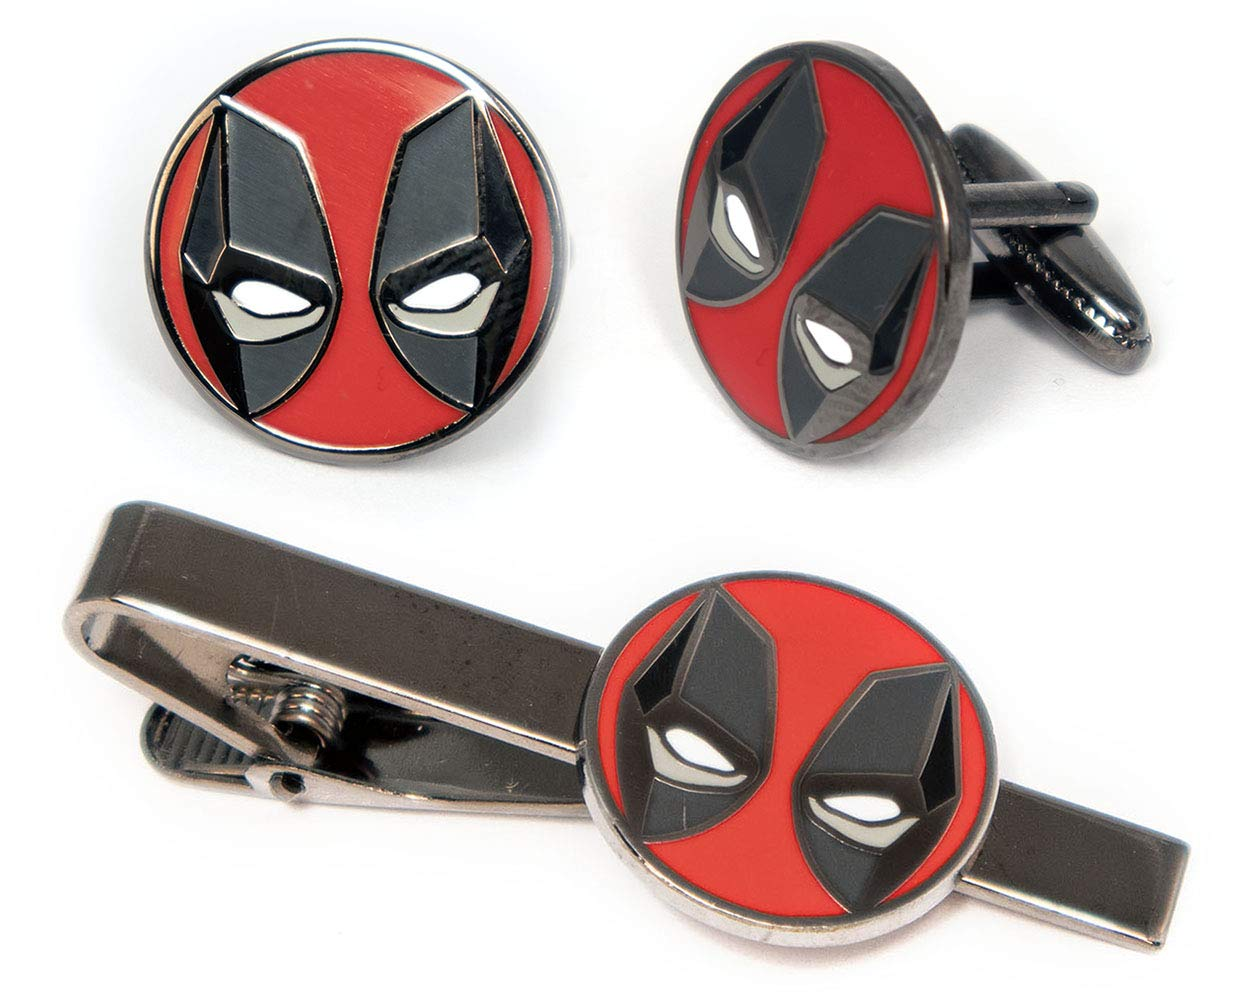 SharedImagination Deadpool Tie Clip, The X-Men Cufflinks, Marvel Minimalist Jewelry, Wolverine Cuff Links Link, Cable Tie Tack Groomsmen Wedding Party Gift by SharedImagination